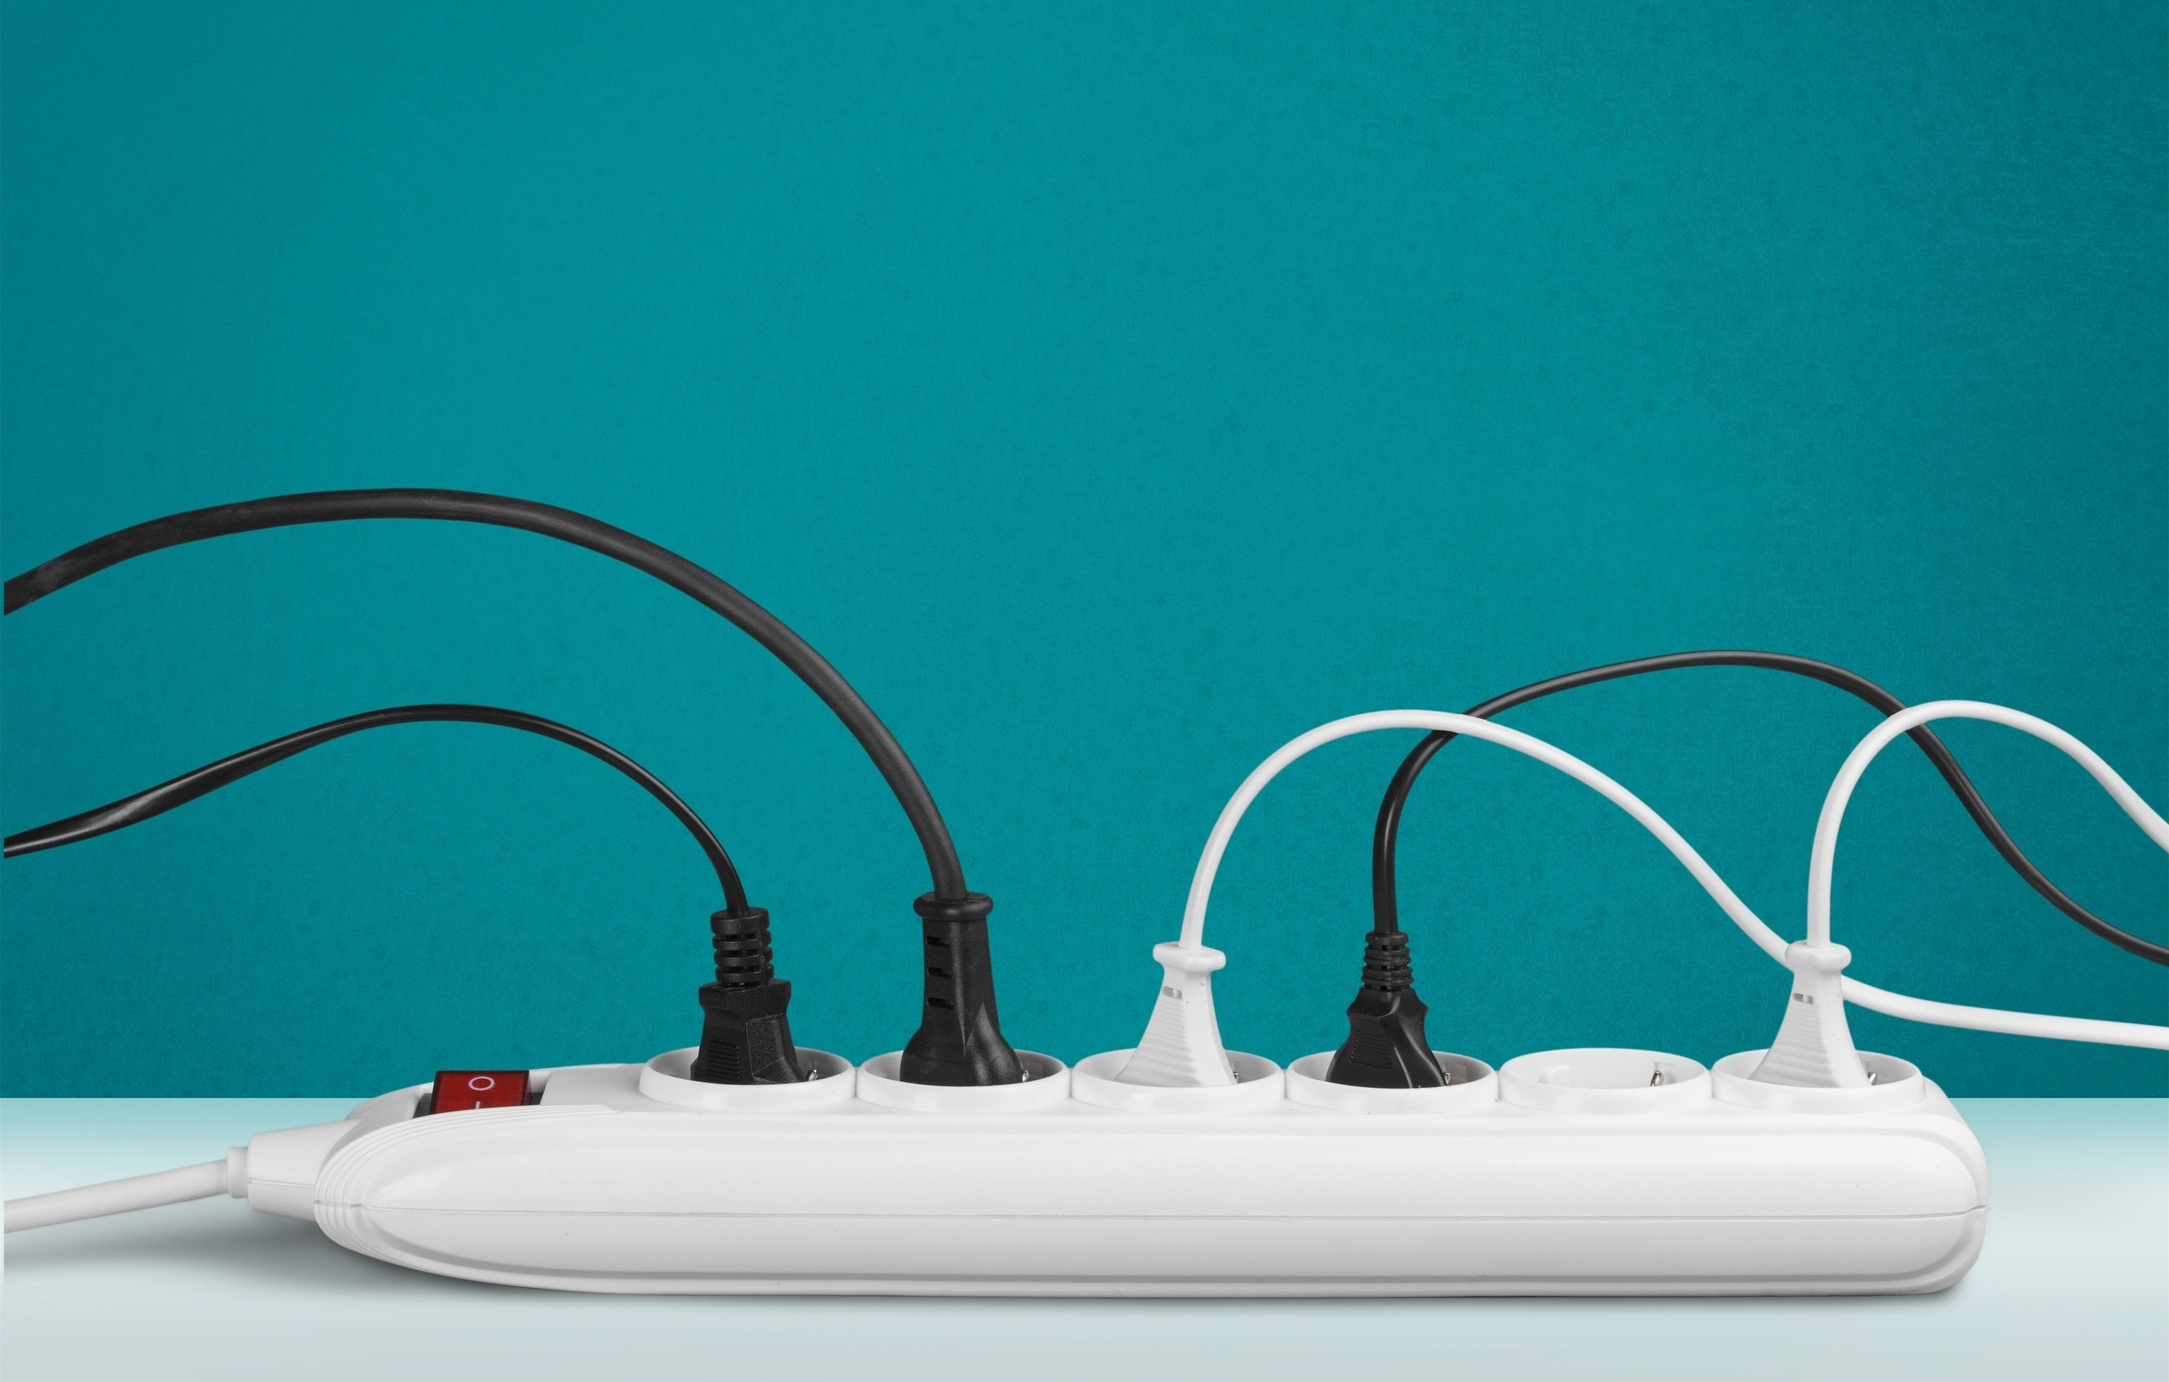 Power strip with plugged in cords